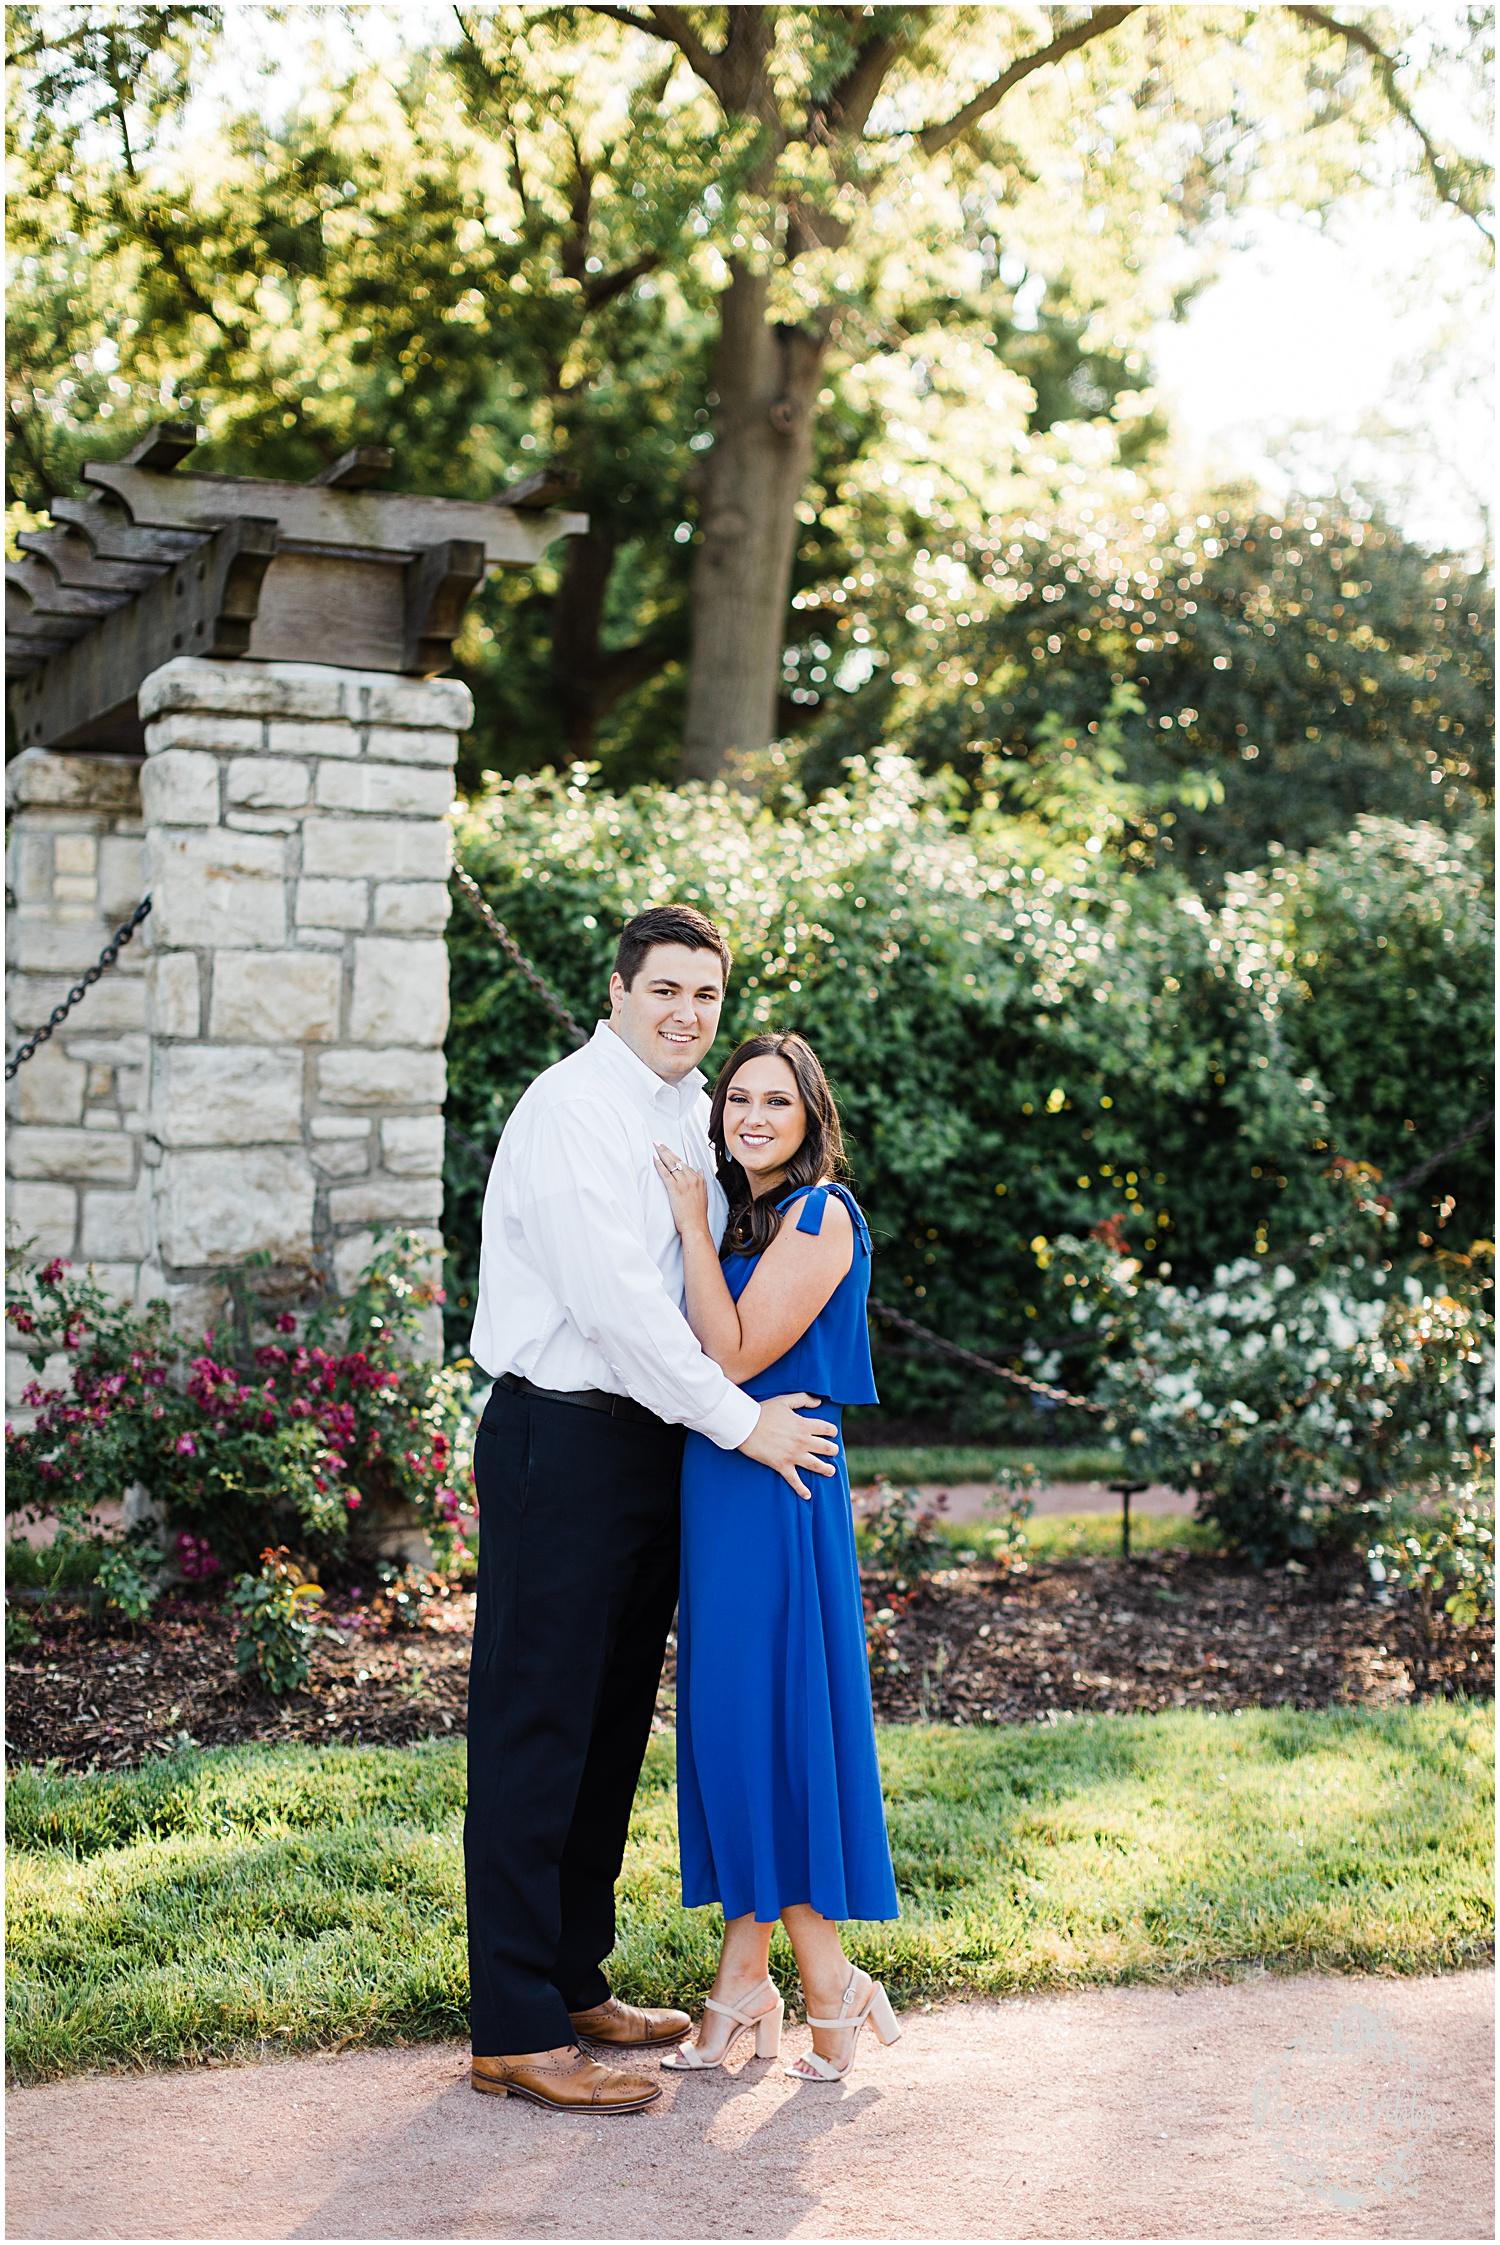 MORGAN & KEVIN ENGAGEMENT BLOG | MARISSA CRIBBS PHOTOGRAPHY_8266.jpg